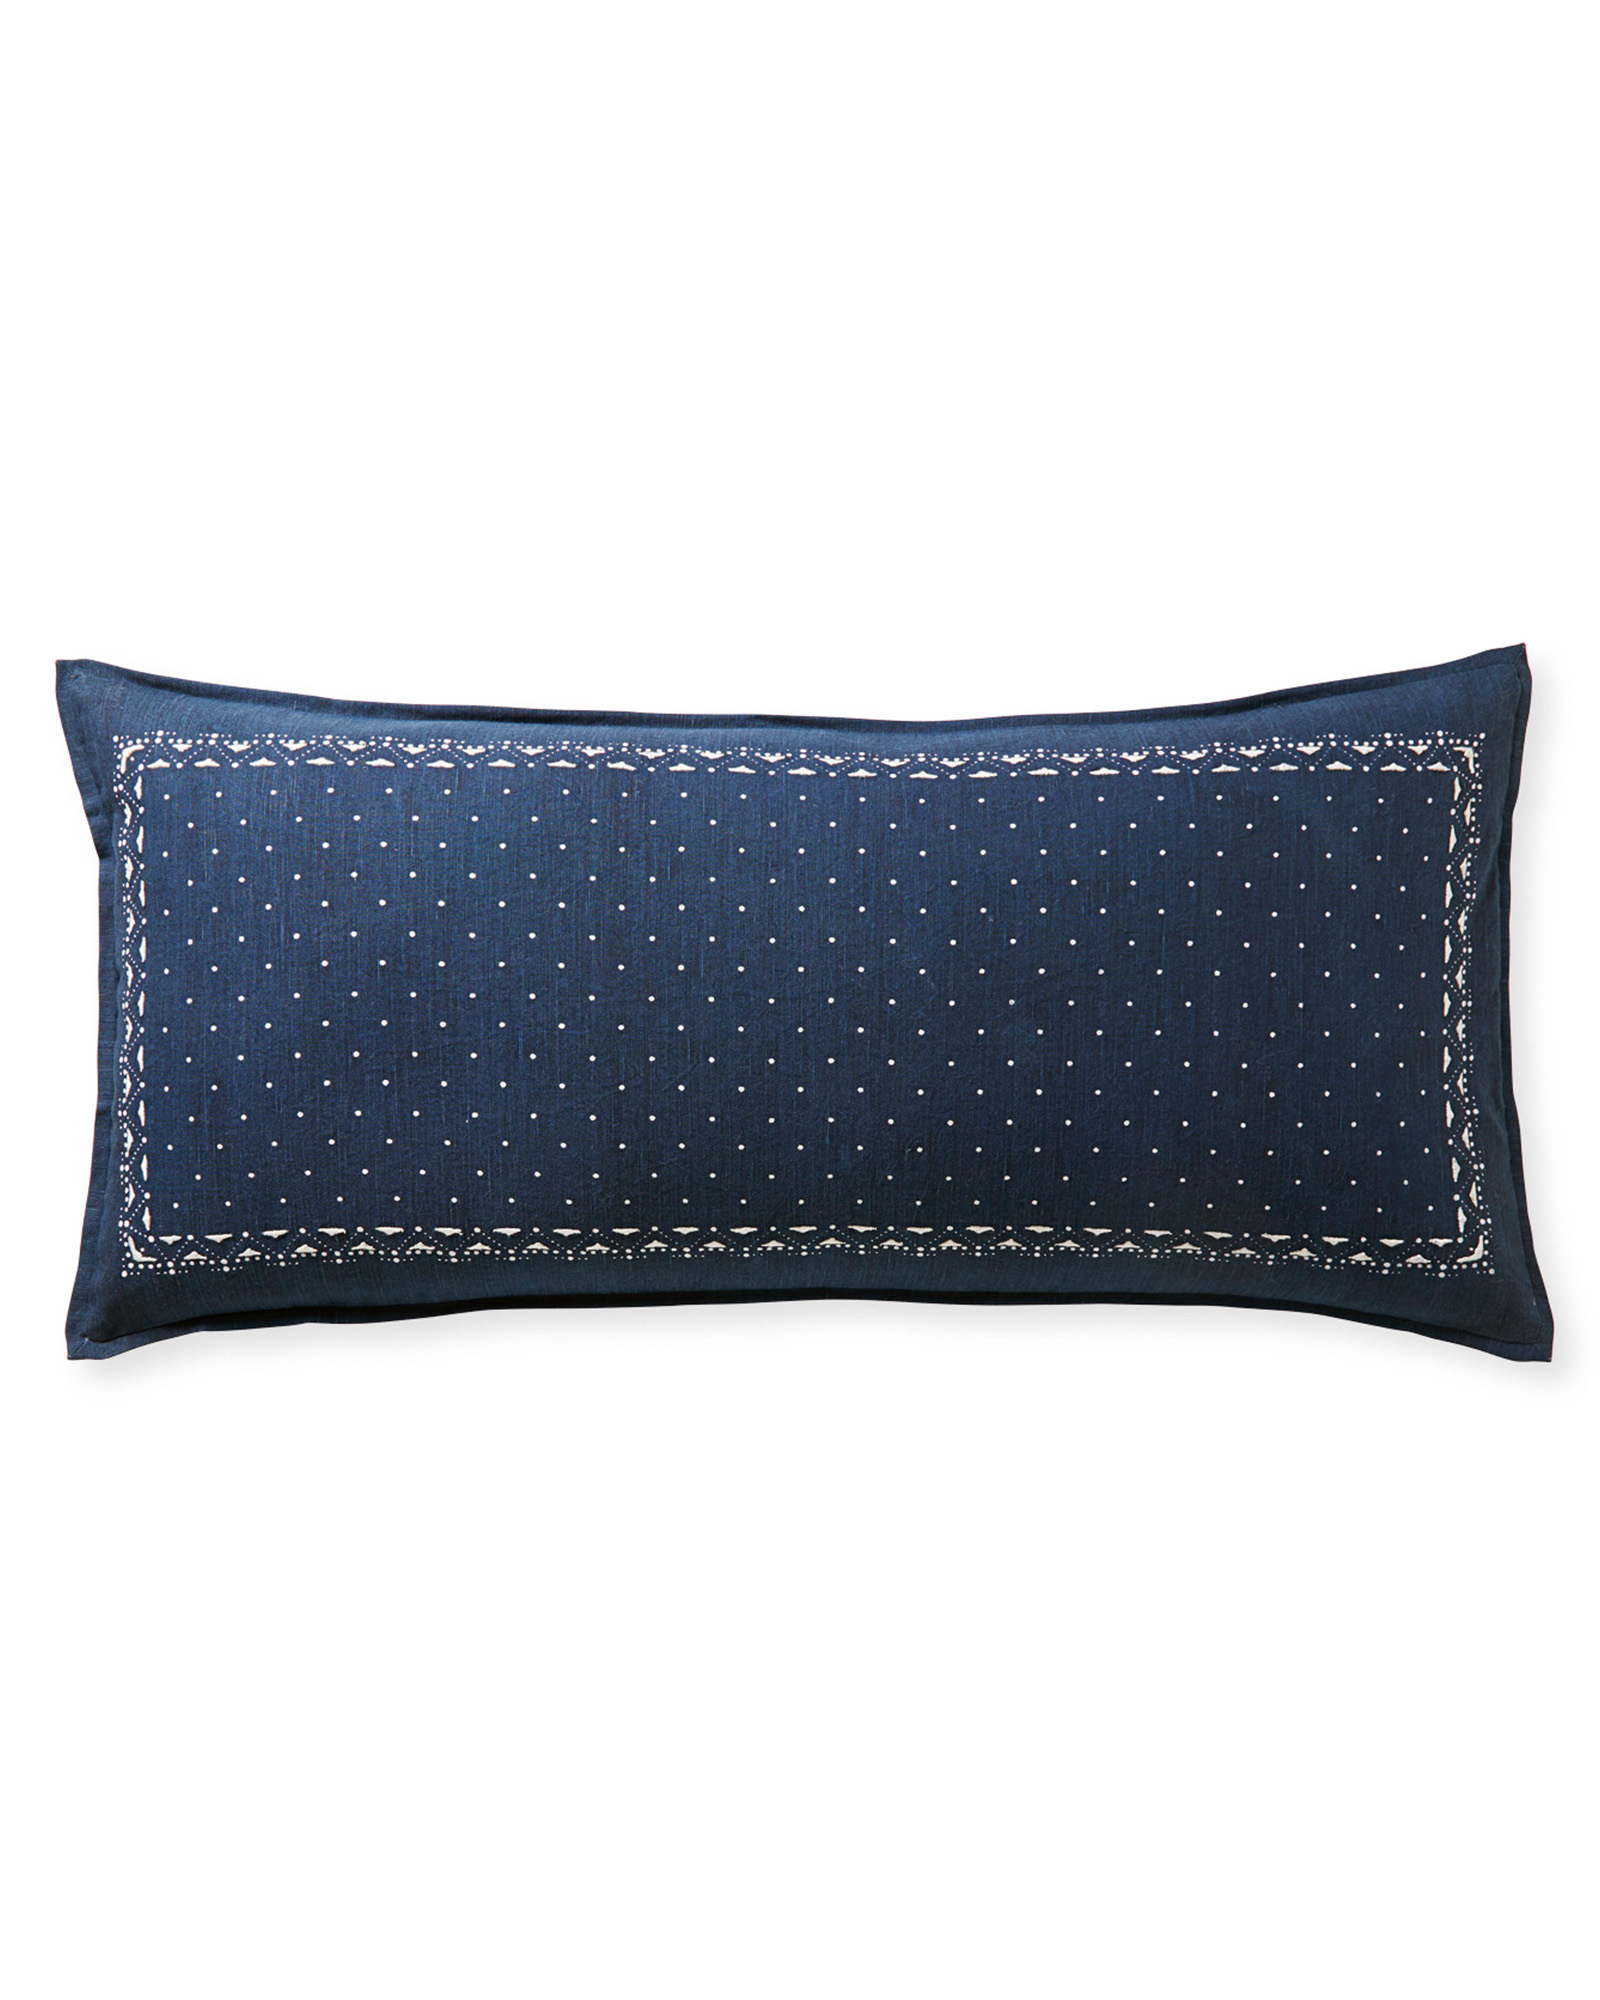 Oakdale Pillow Cover, Vintage Indigo